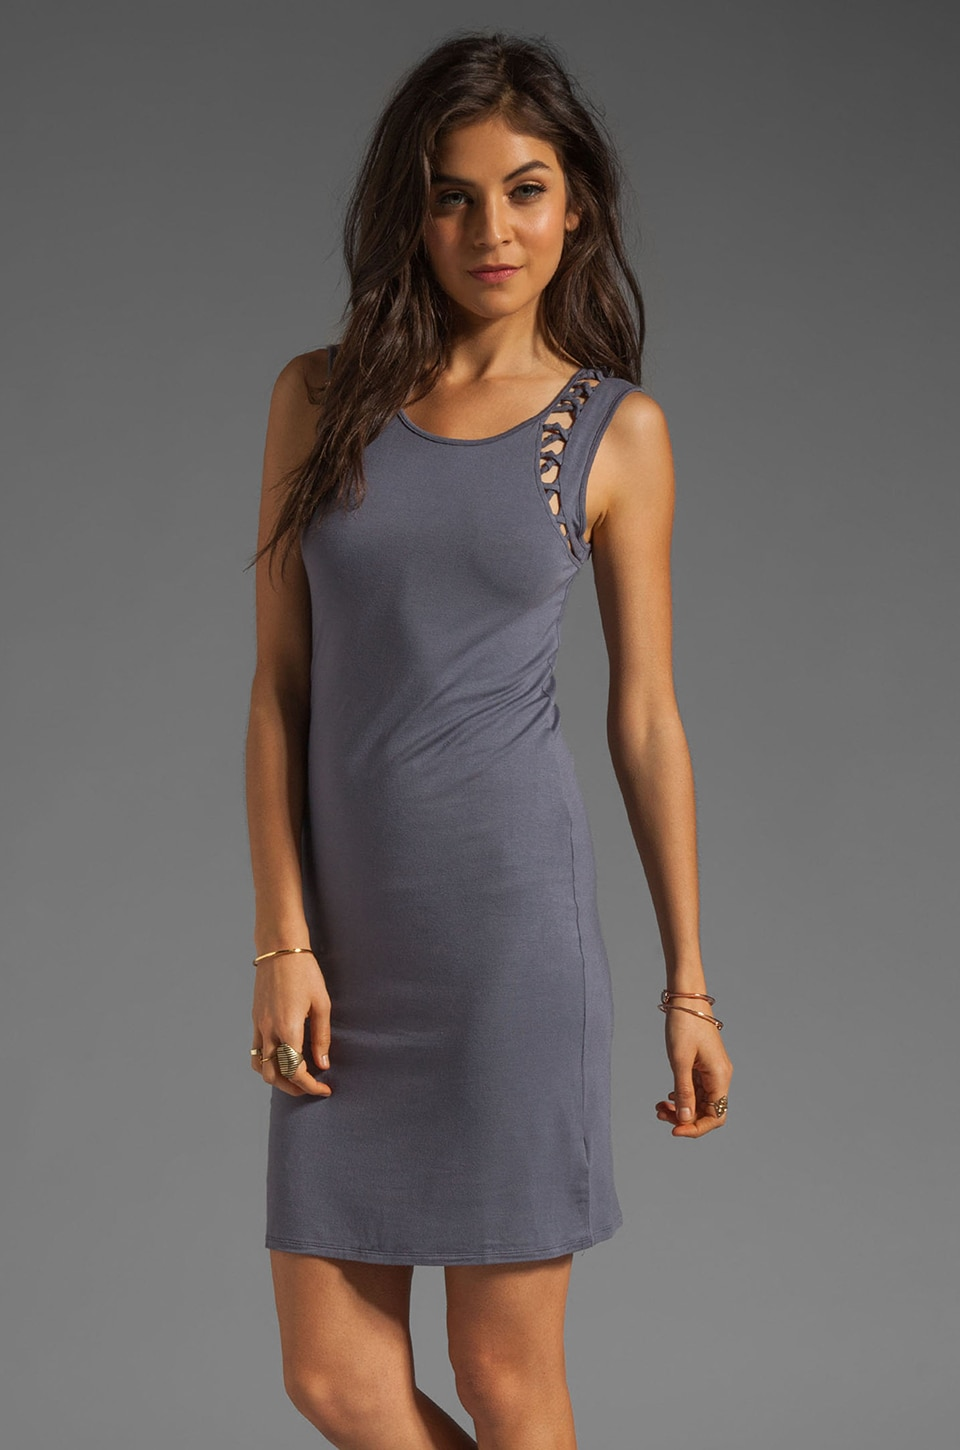 Free People Macramazing Bodycon Dress in Dusk Combo